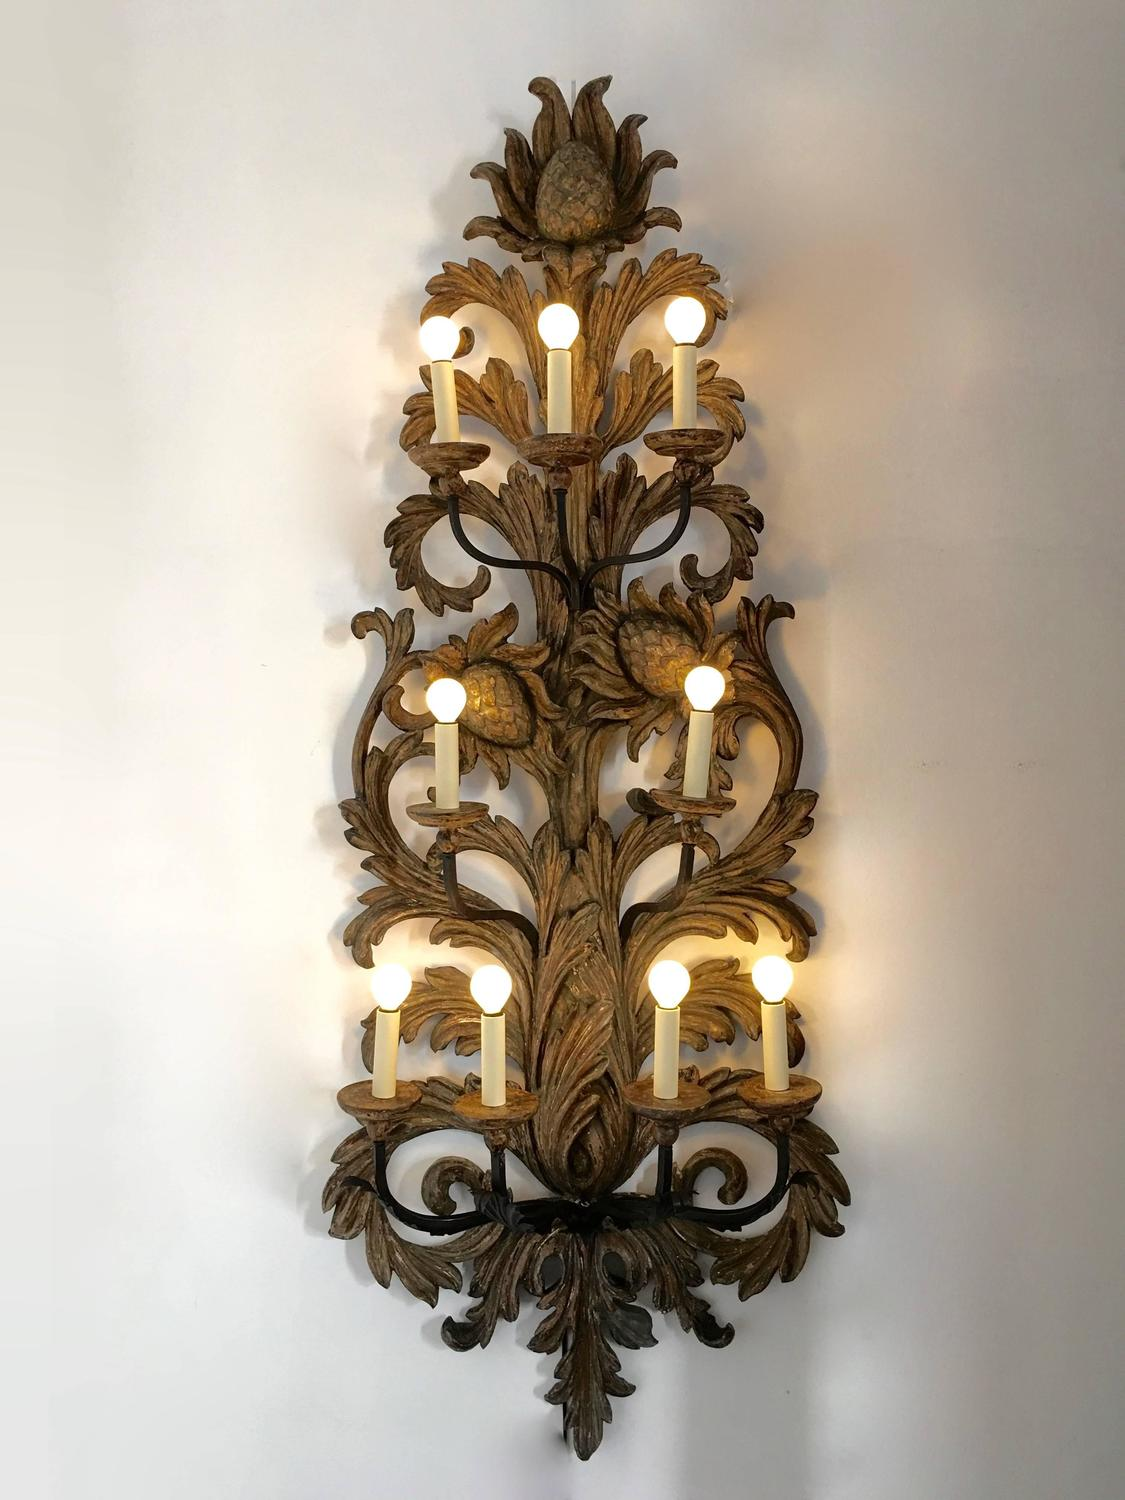 Pair of Very Large Wooden Carved Wall Lights, Italy, 1900 For Sale at 1stdibs